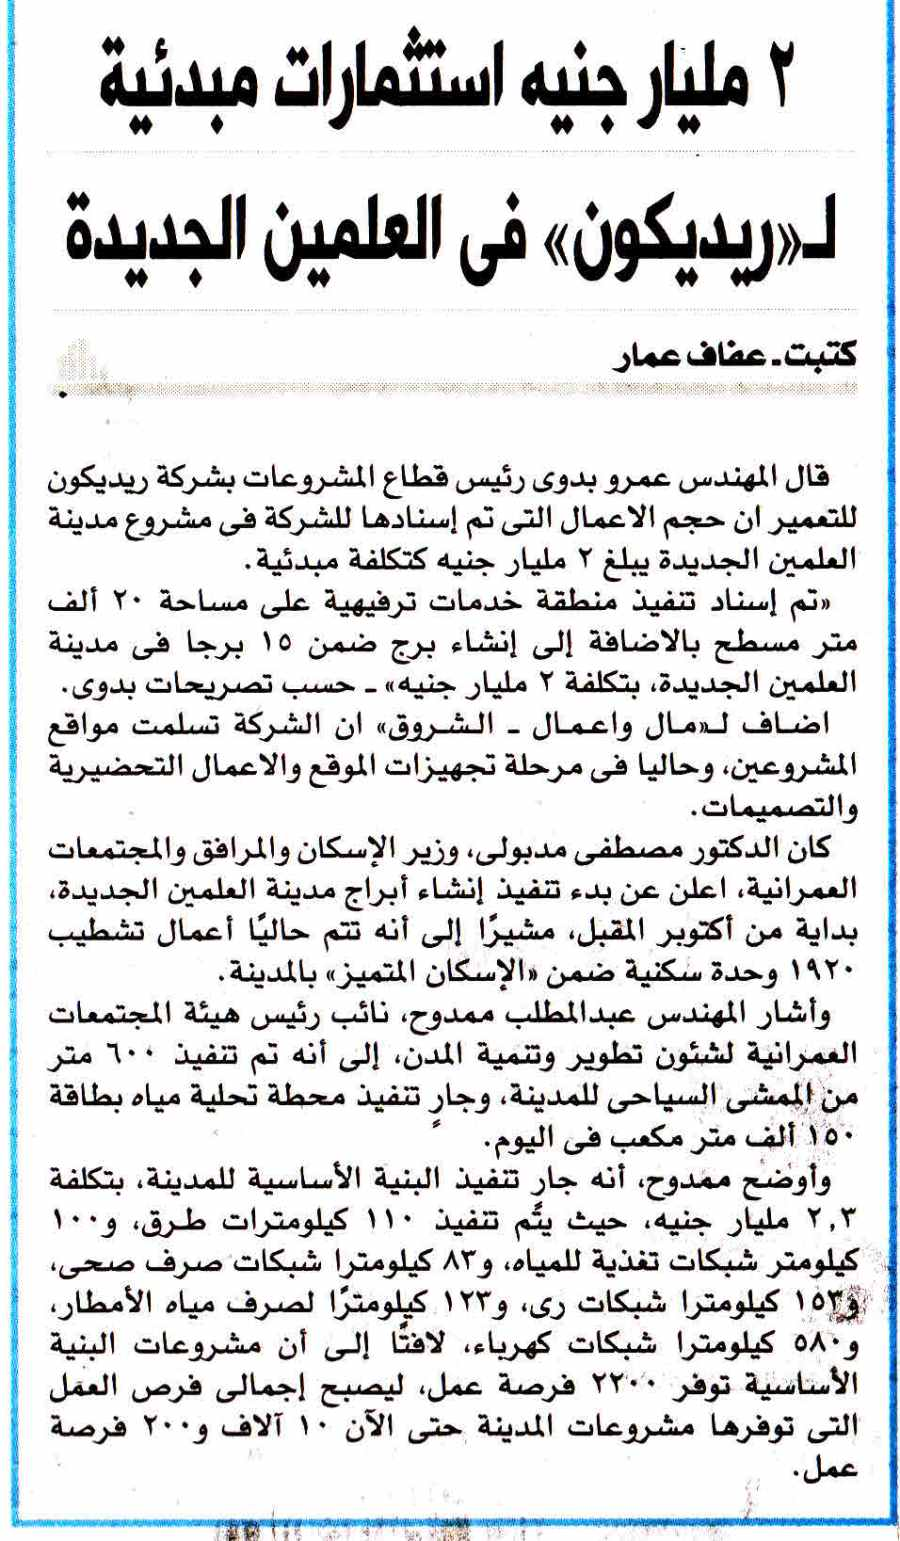 Al Shorouk (Sup) 17 Sep P.1.jpg